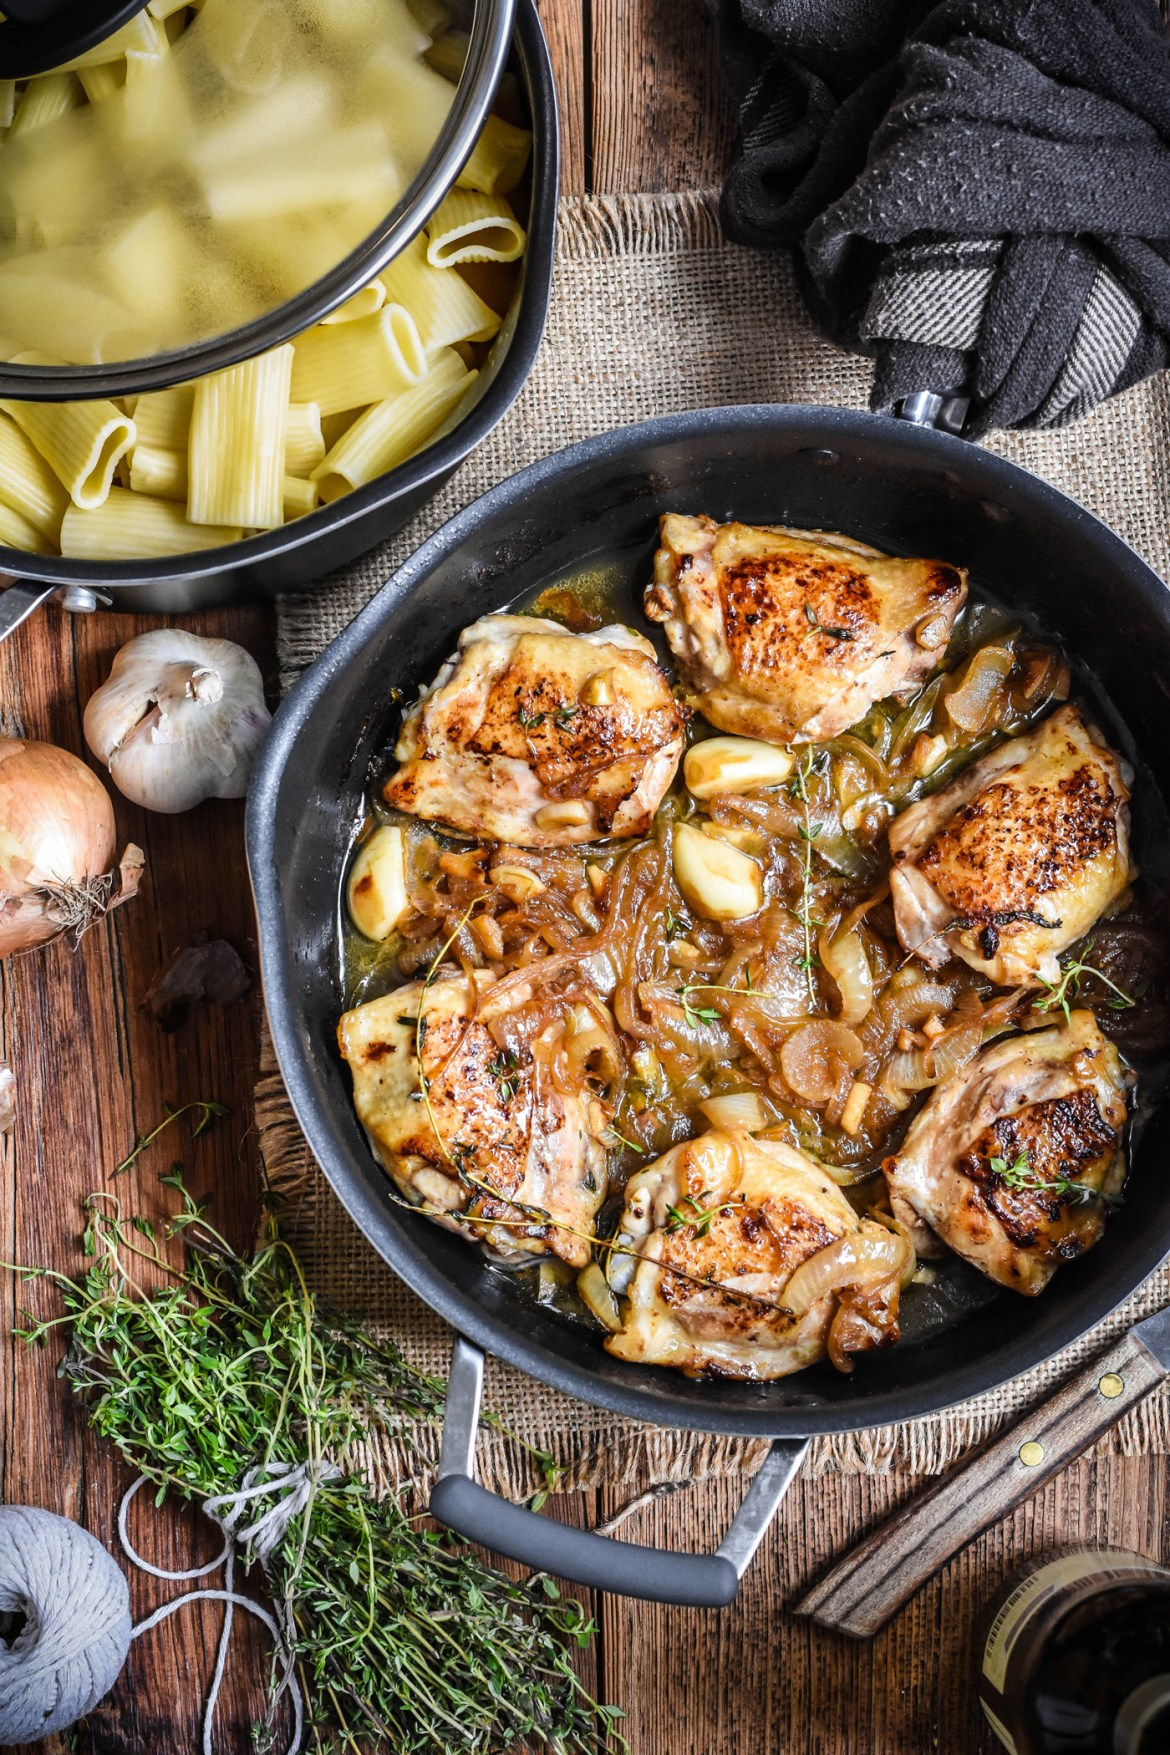 Braised Chicken Thighs with Garlic and Onion